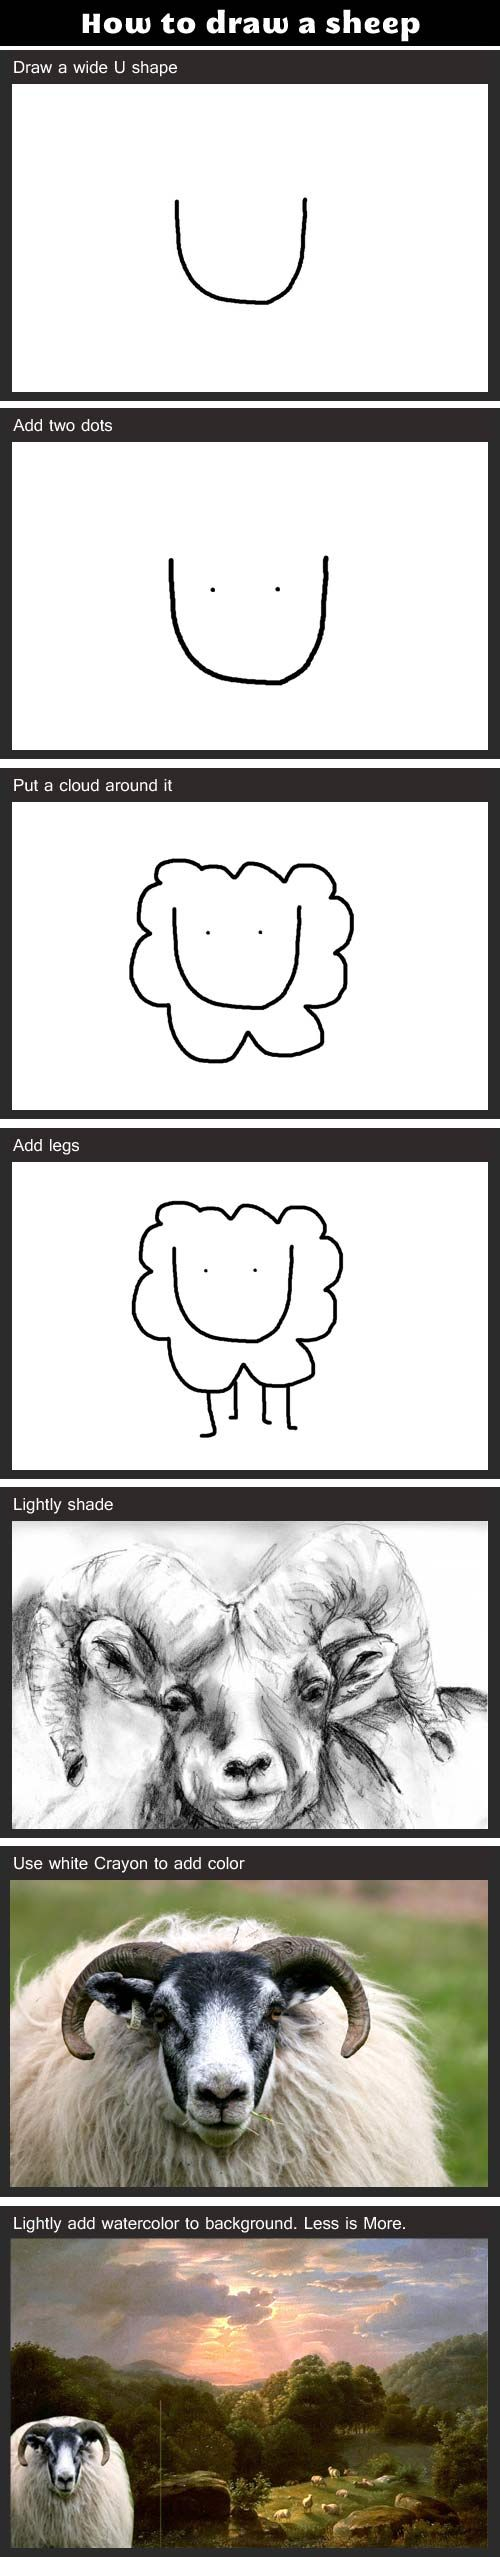 best 25 sheep drawing ideas on pinterest sheep illustration